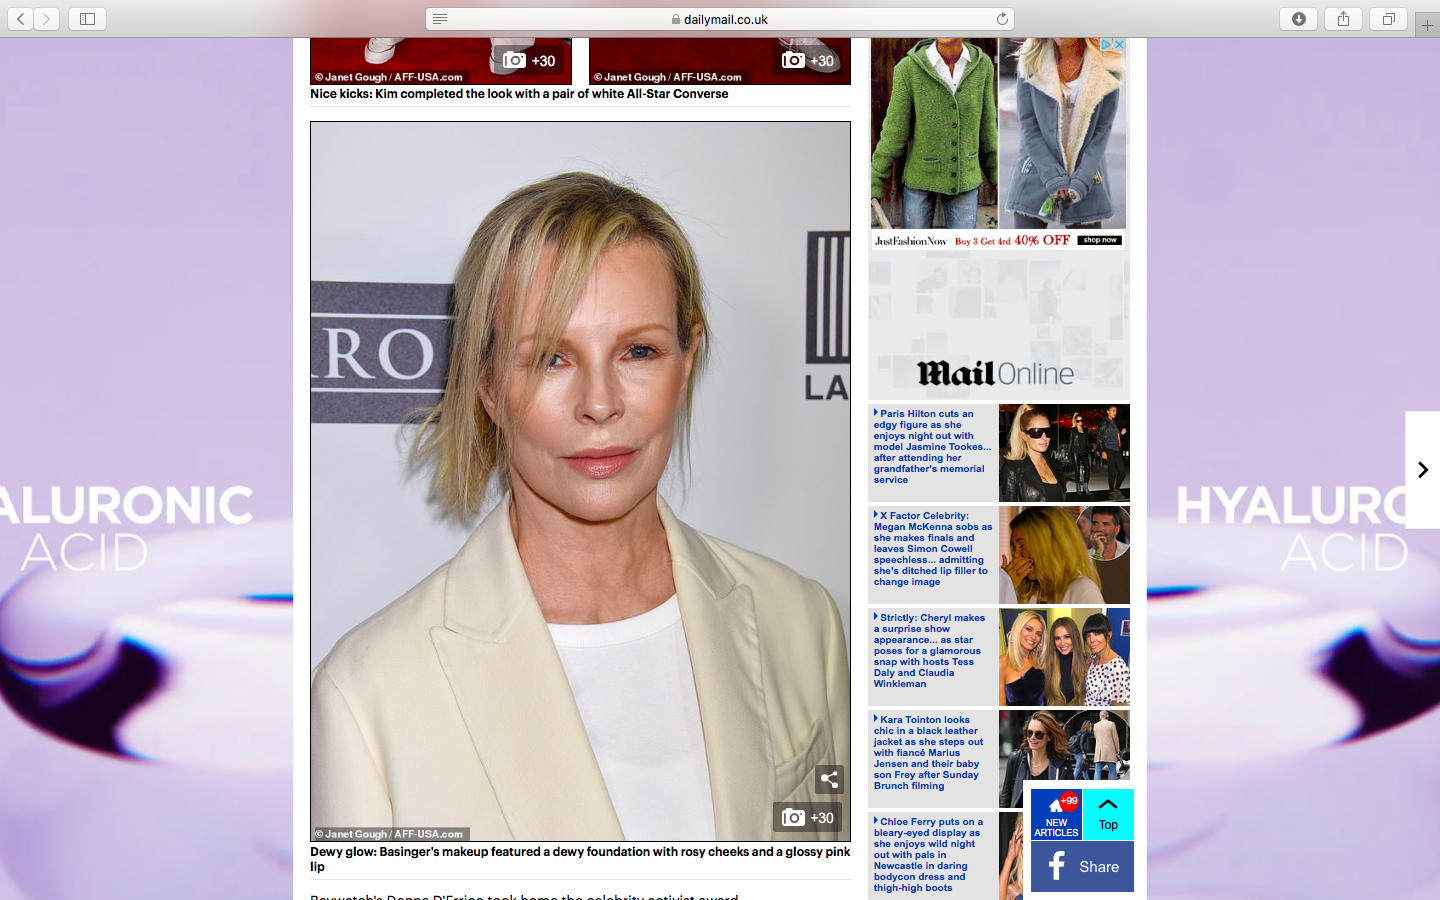 Super star Hollywood actress and original Bond girl – Kim Basinger wearing my contour palette at last nights charity gala.